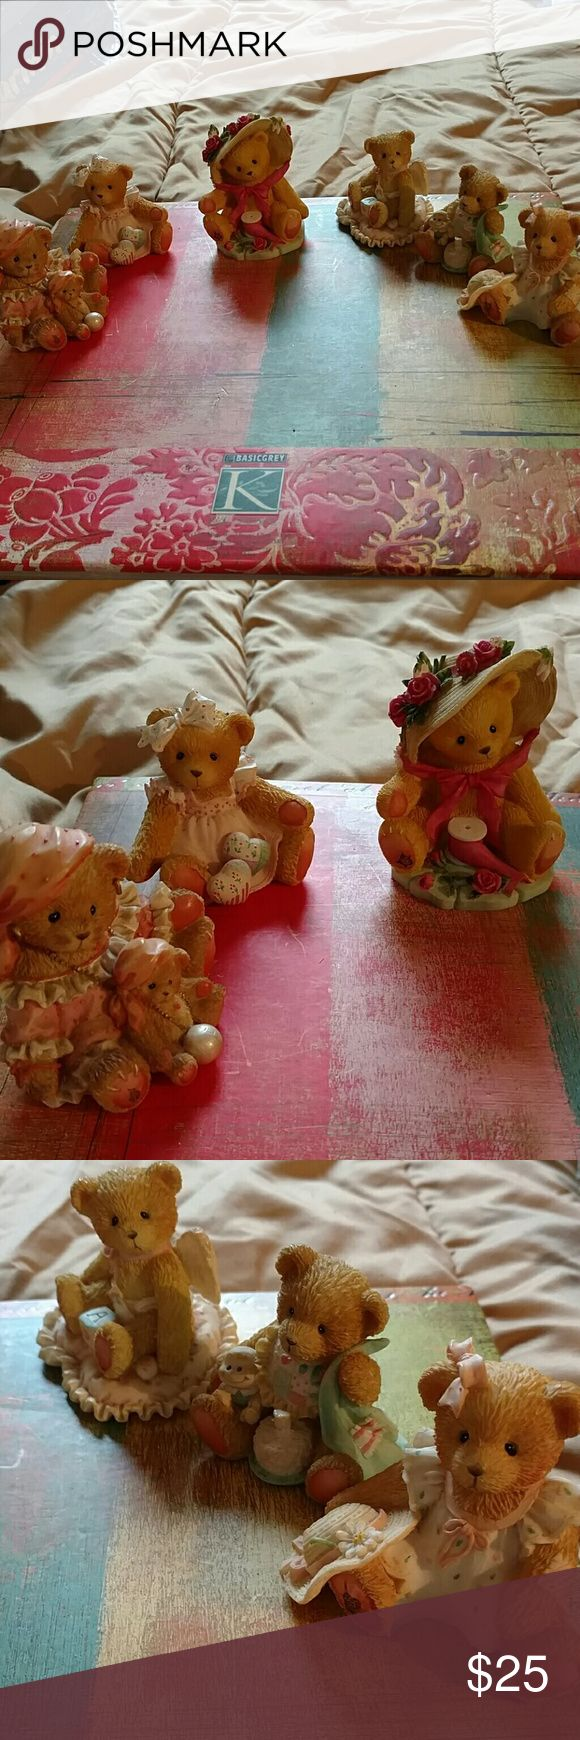 6 piece cherish Teddy home decor figurines All are in beautiful condition except one please see picture number 4 the fire to the birthday candle broke off. 6 piece Vintage cherished Teddy home decor figurines Other